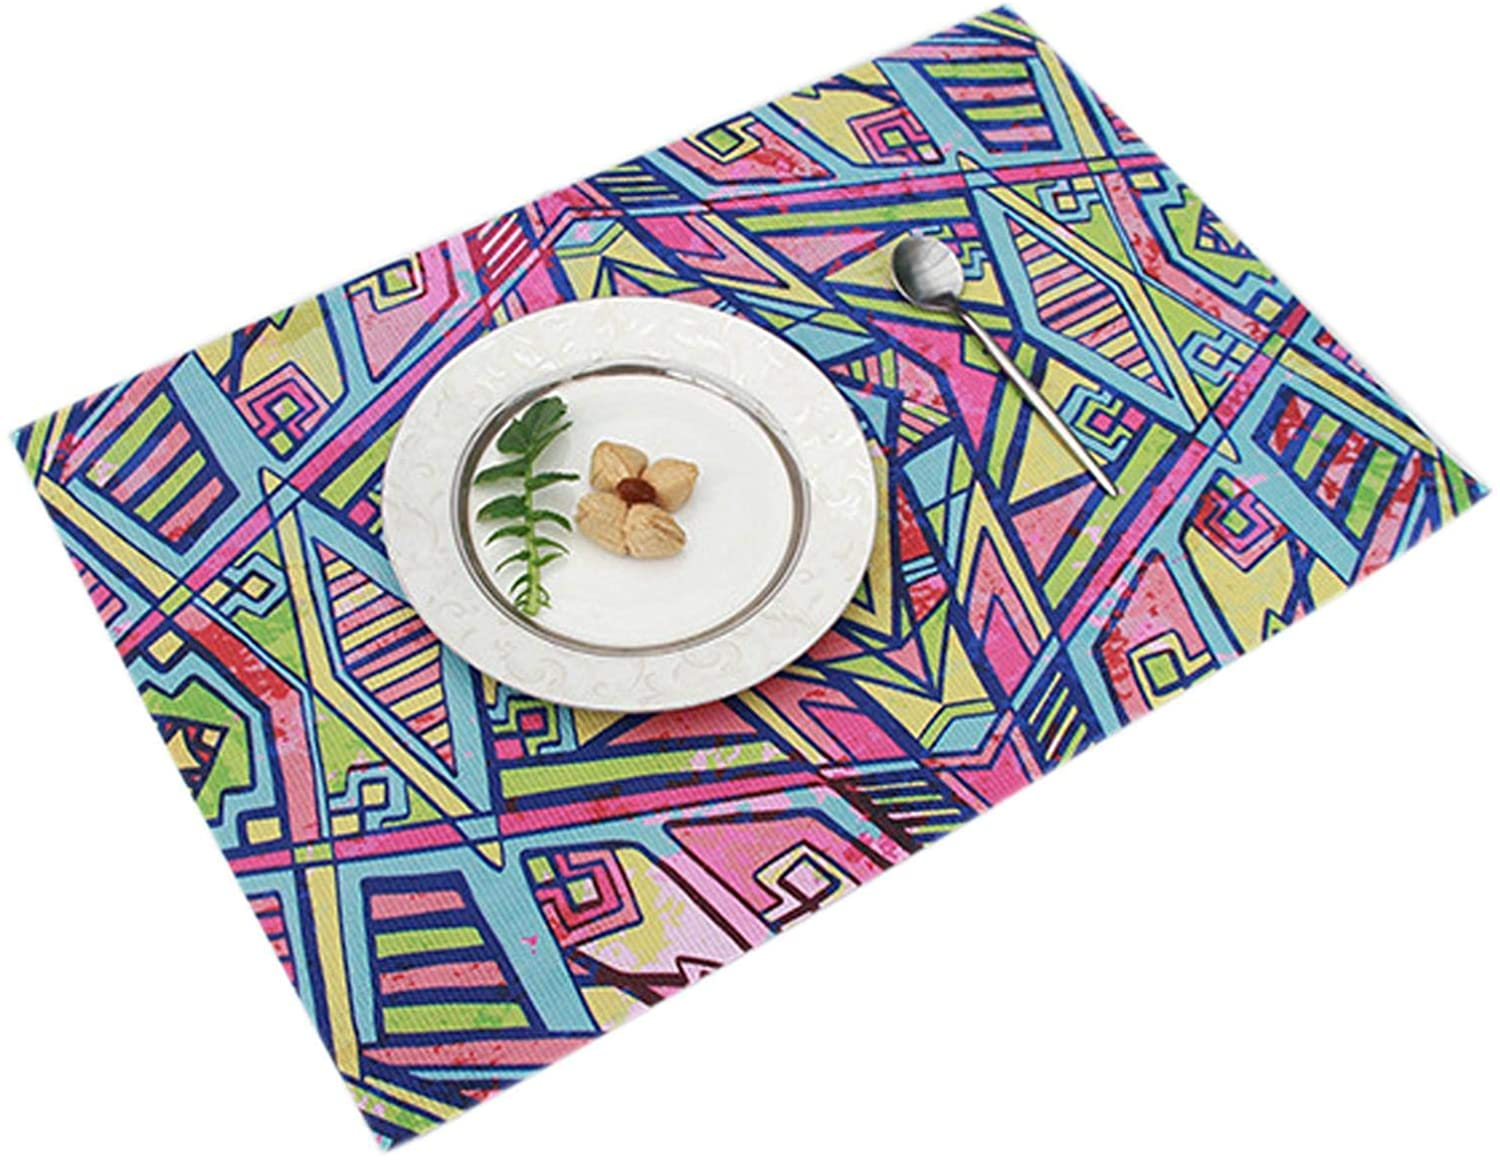 Waterproof Insulated Table Mats Bedding Persian Rug Placemats, Floral Damask Decorative Cotton Linen Woven Dining Table Mats